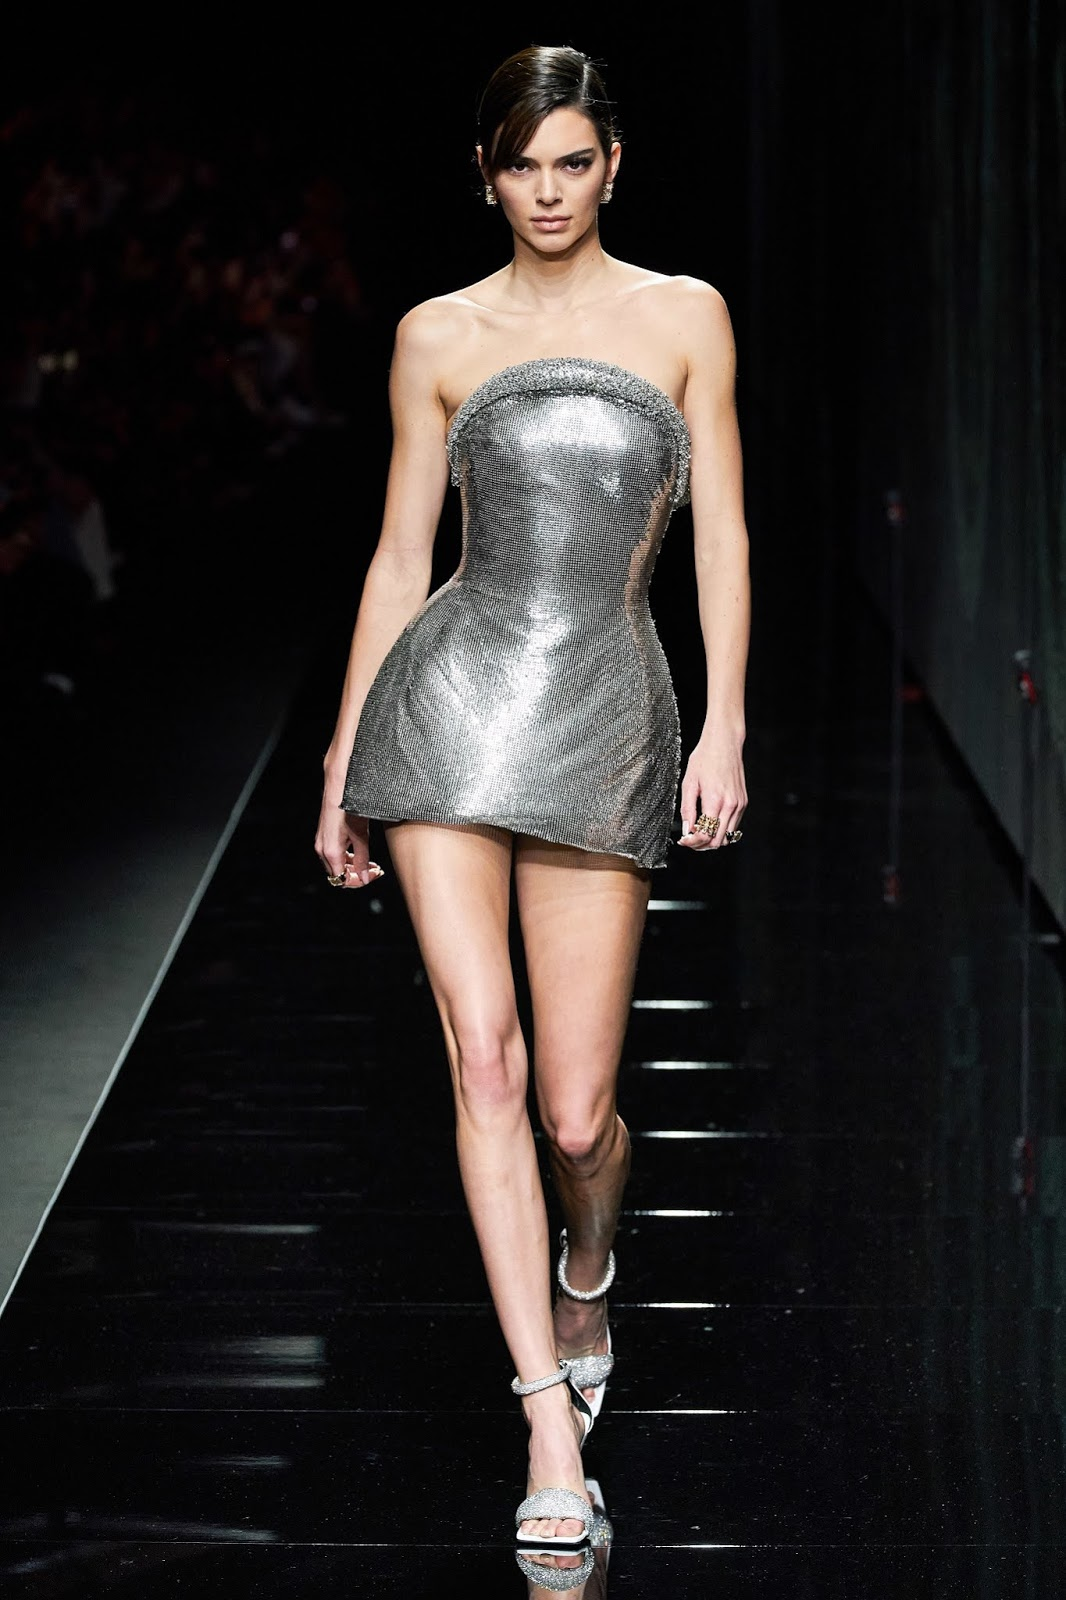 Kendall Jenner closes the Versace FW20 Milan Fashion Week Show in a daring mini dress